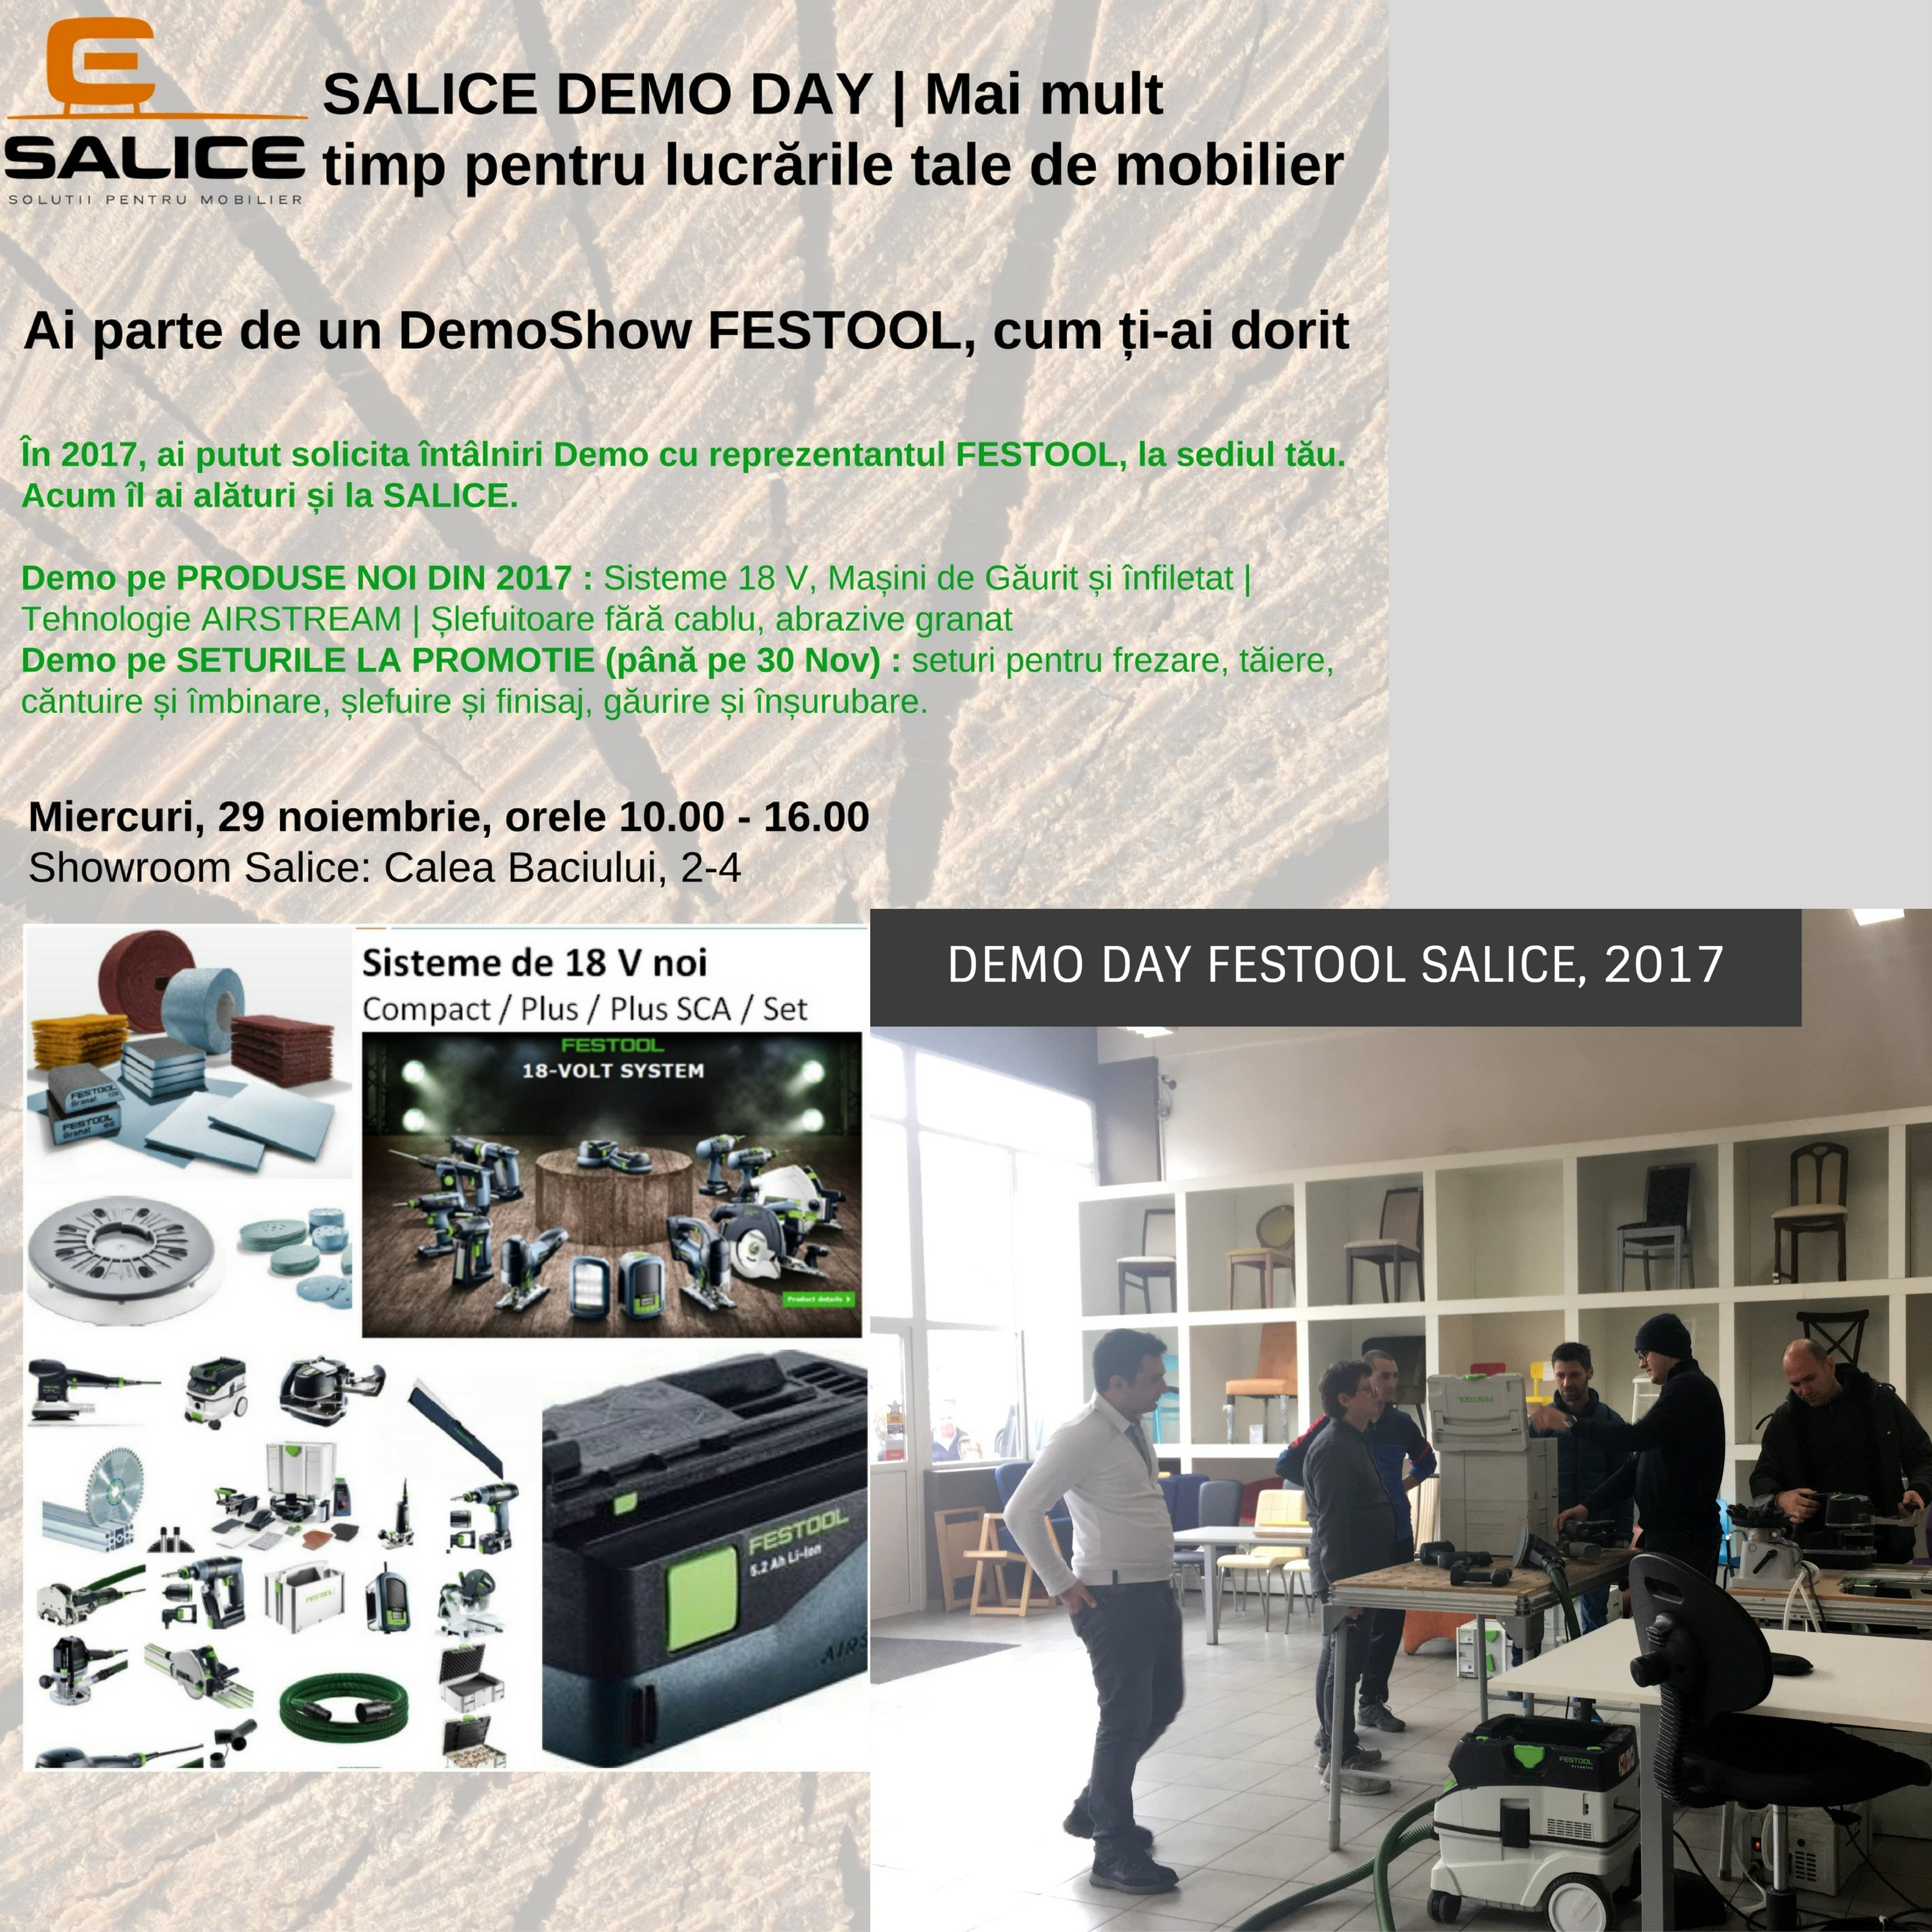 Demo Festool Salice Cluj